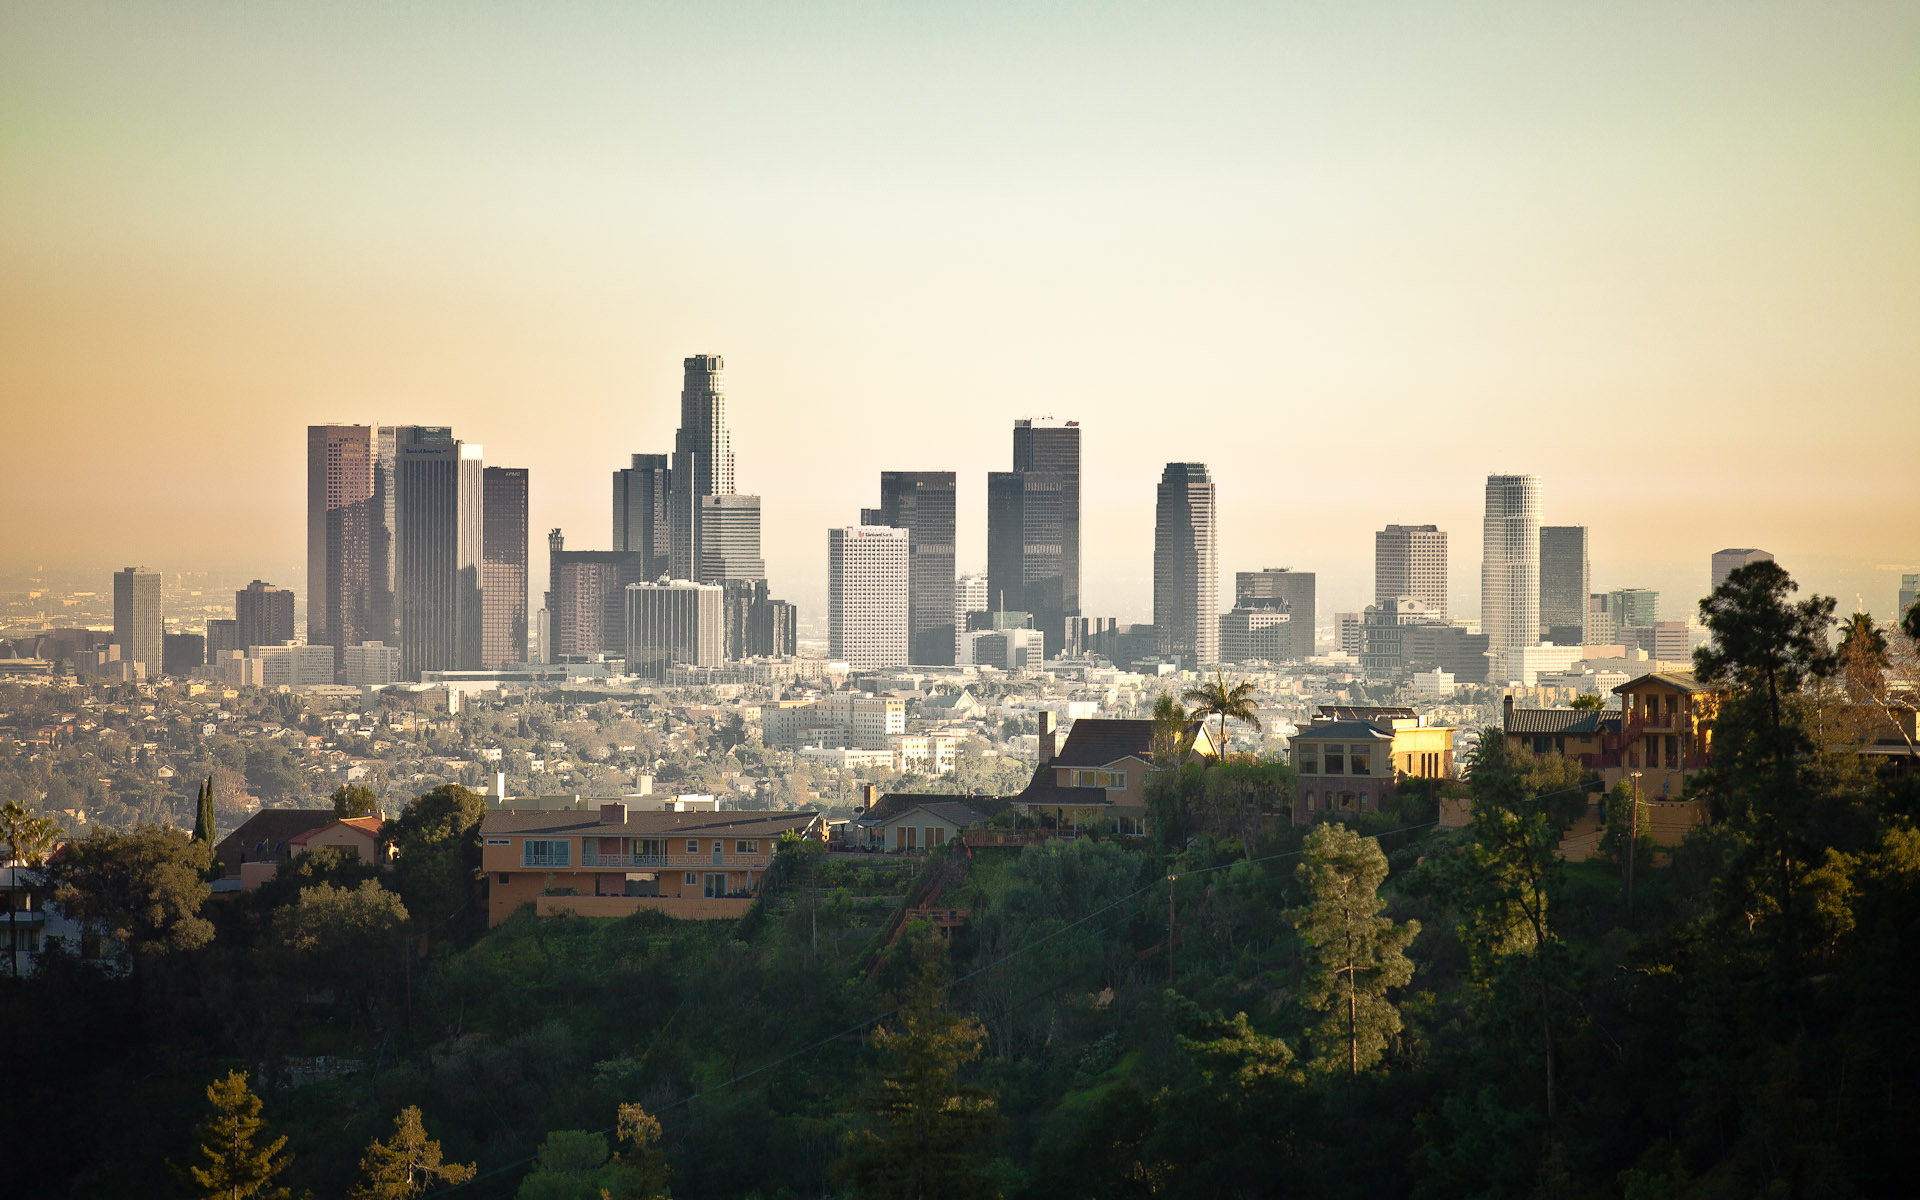 Cities_USA__California__Los_Angeles_033963_